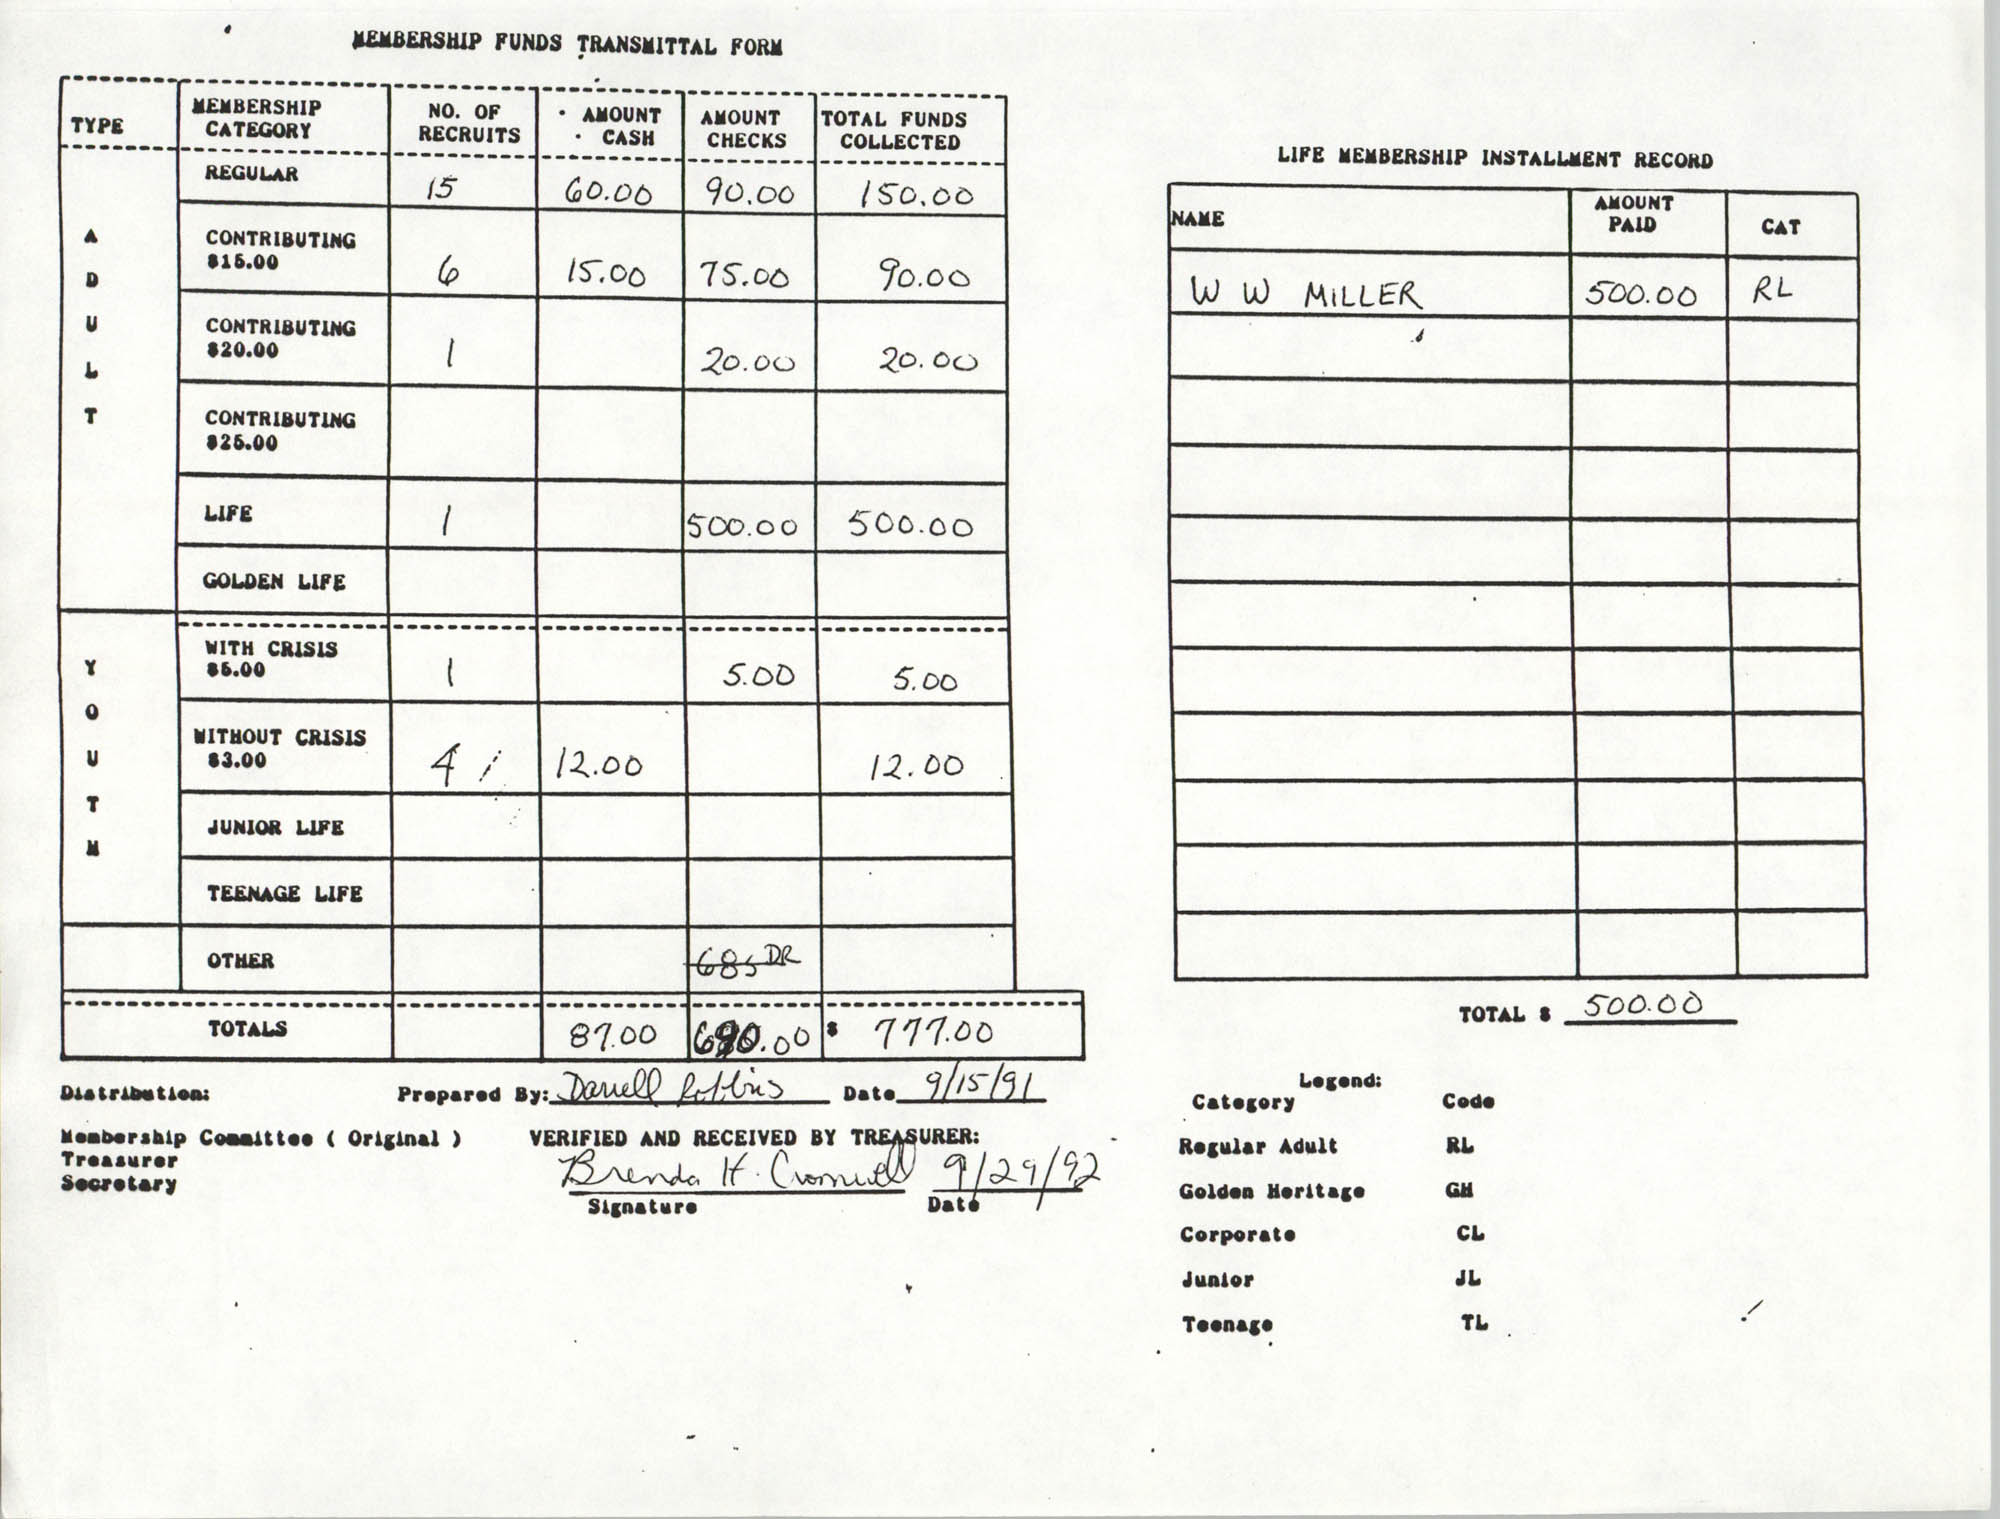 Charleston Branch of the NAACP Funds Transmittal Forms, September 1992, Page 1